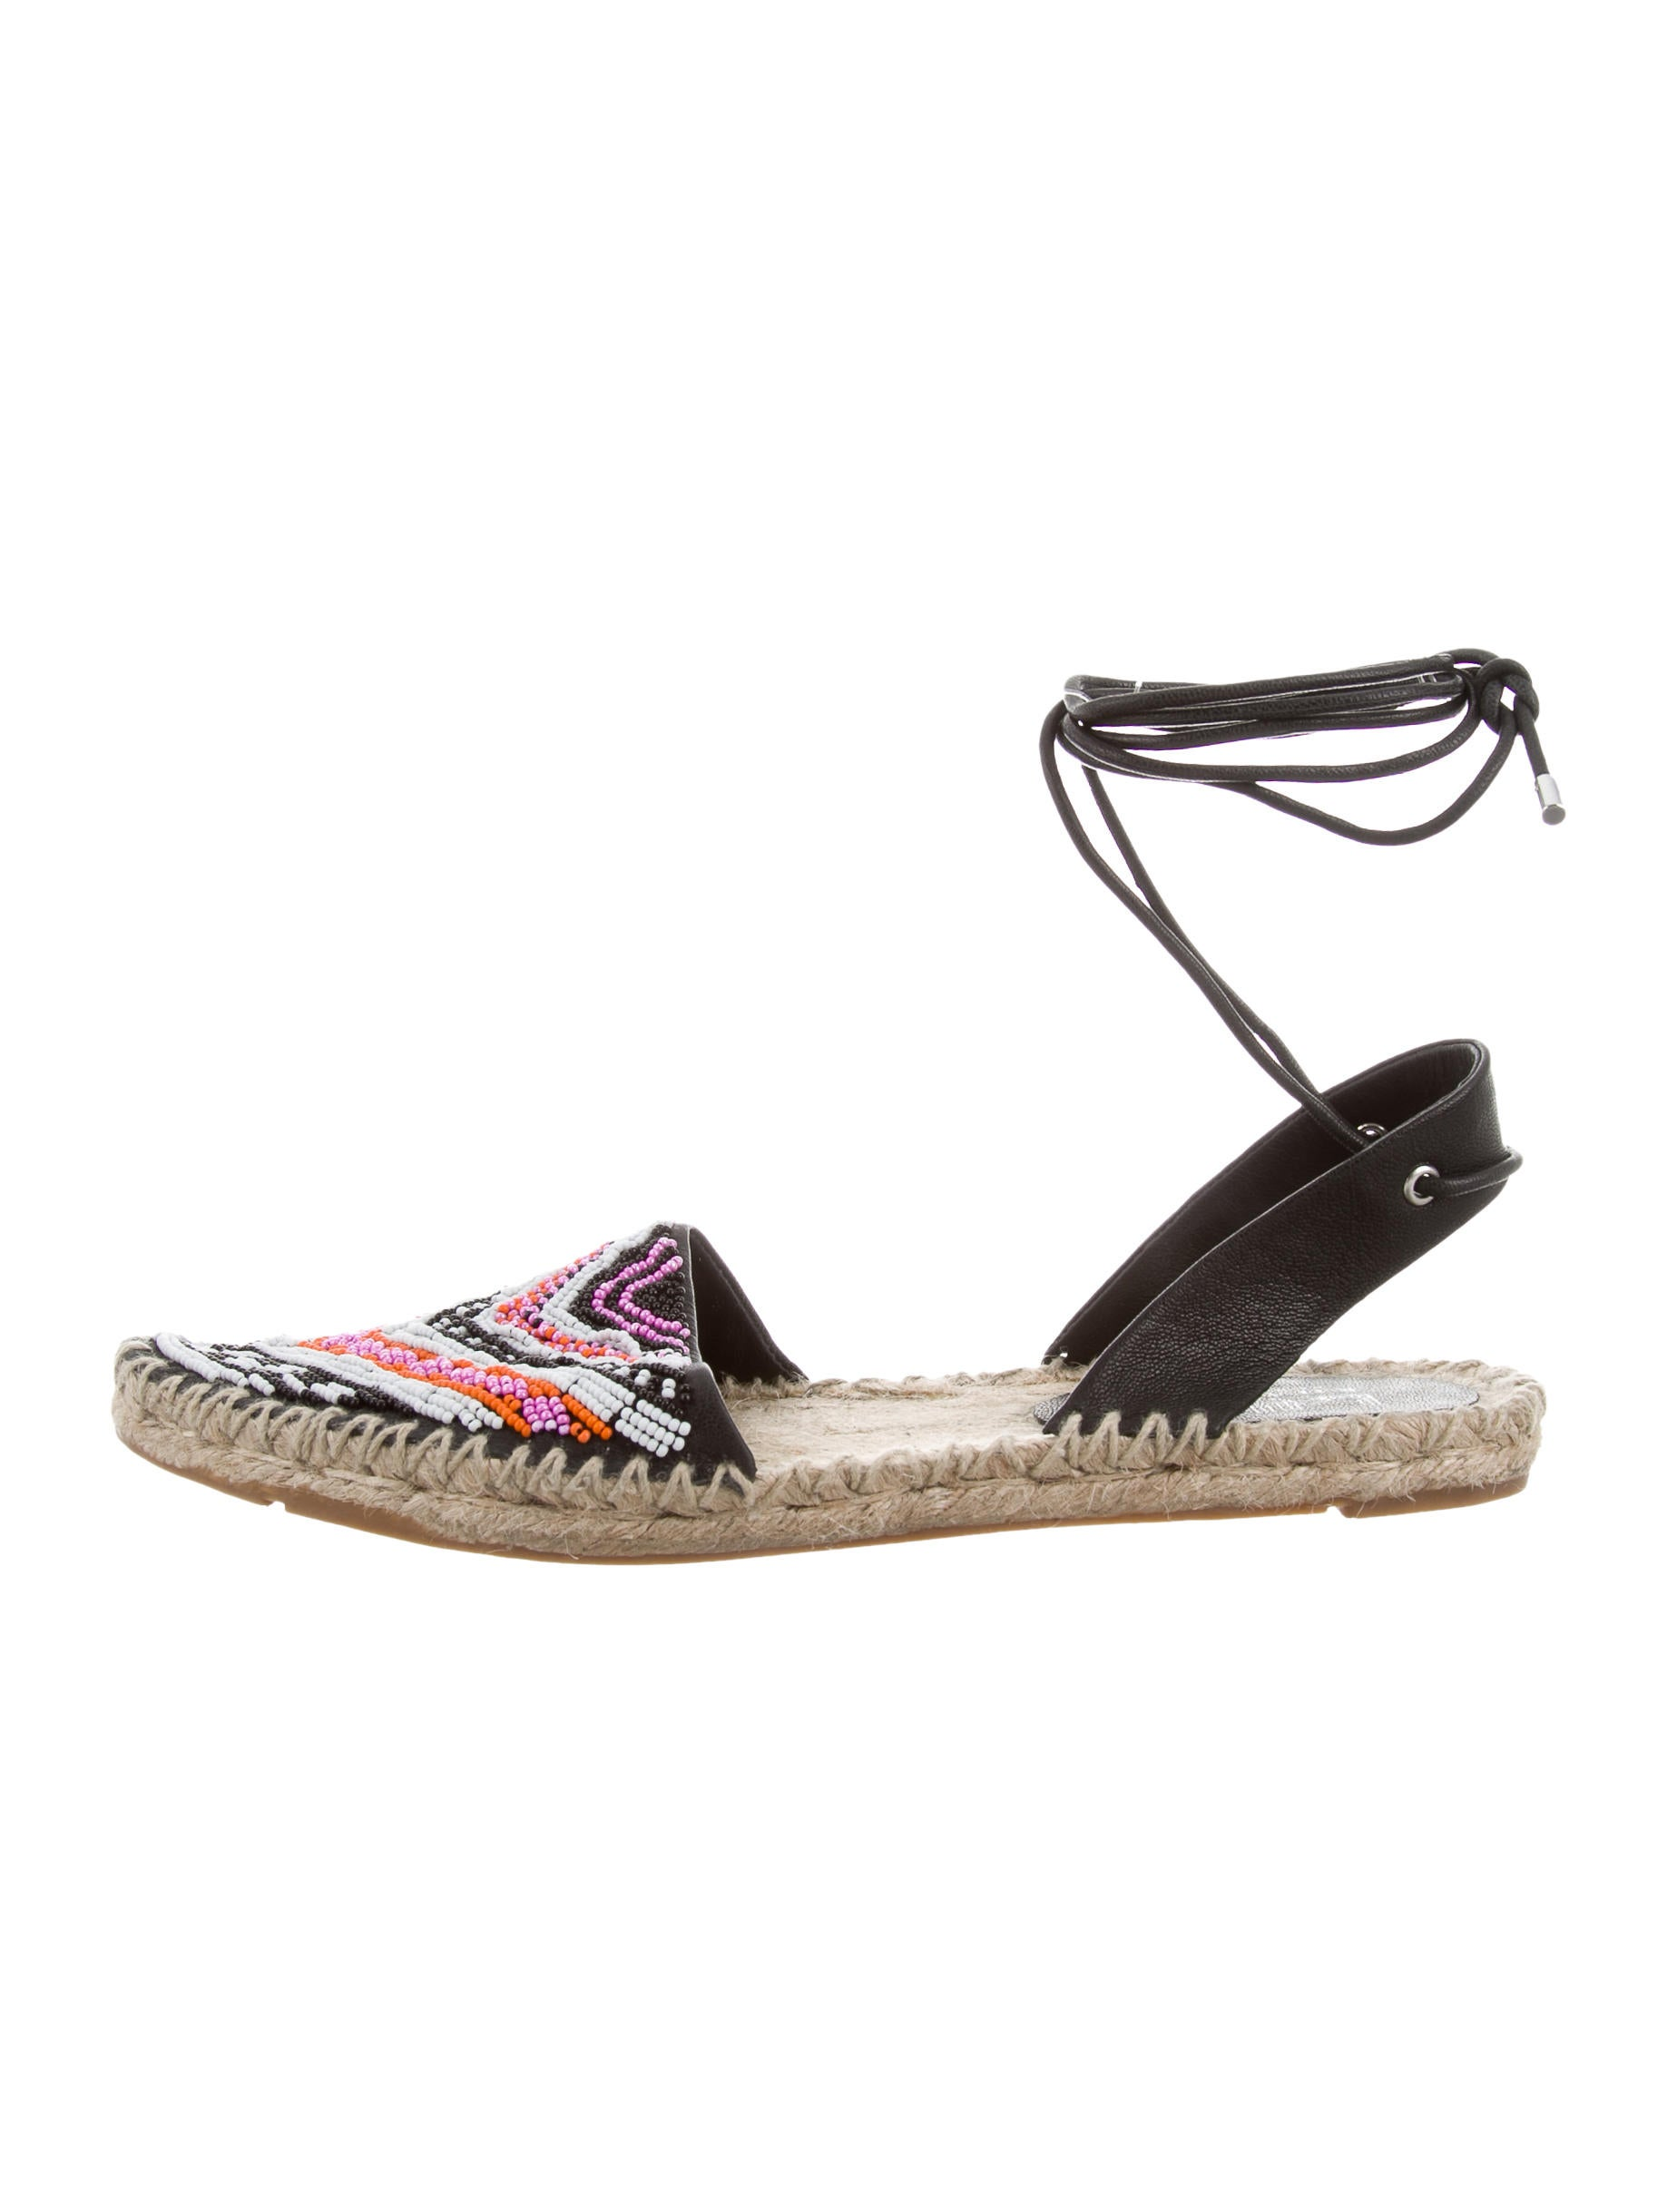 Sigerson Morrison Beaded Lace-Up Espadrilles w/ Tags perfect cheap online finishline online free shipping shopping online outlet eastbay PzWGlQC